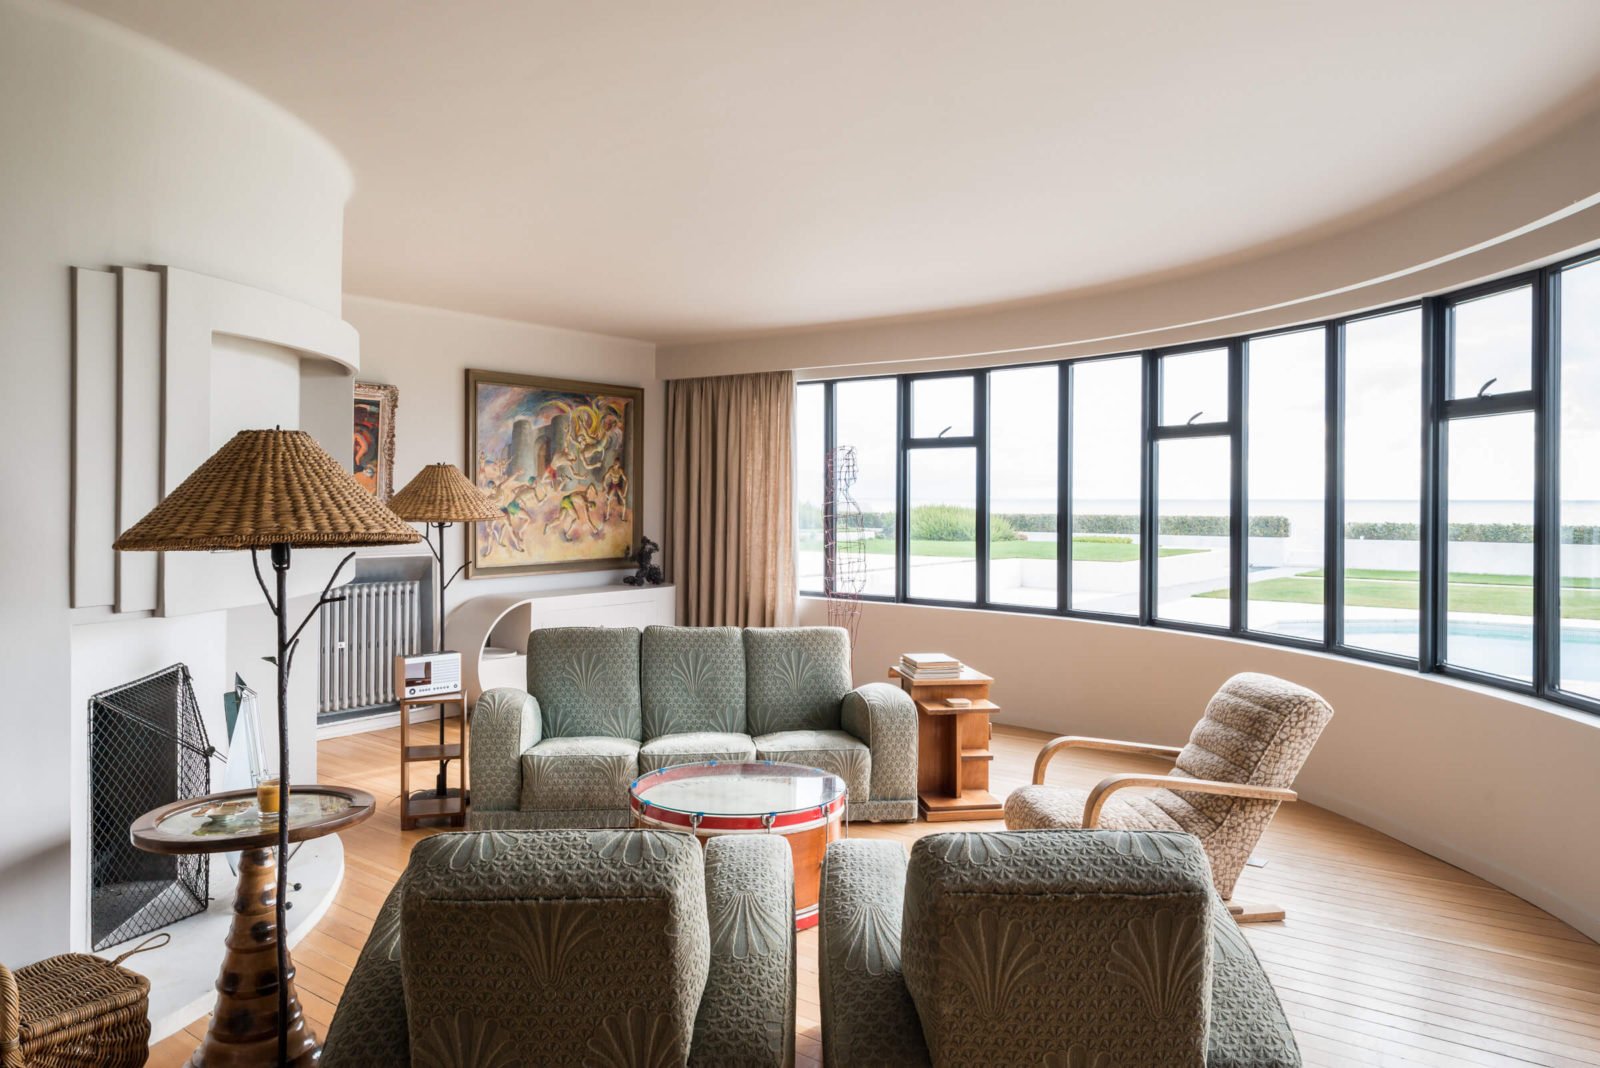 Home moderne fabulous home moderne with home moderne for Streamline luxury suites